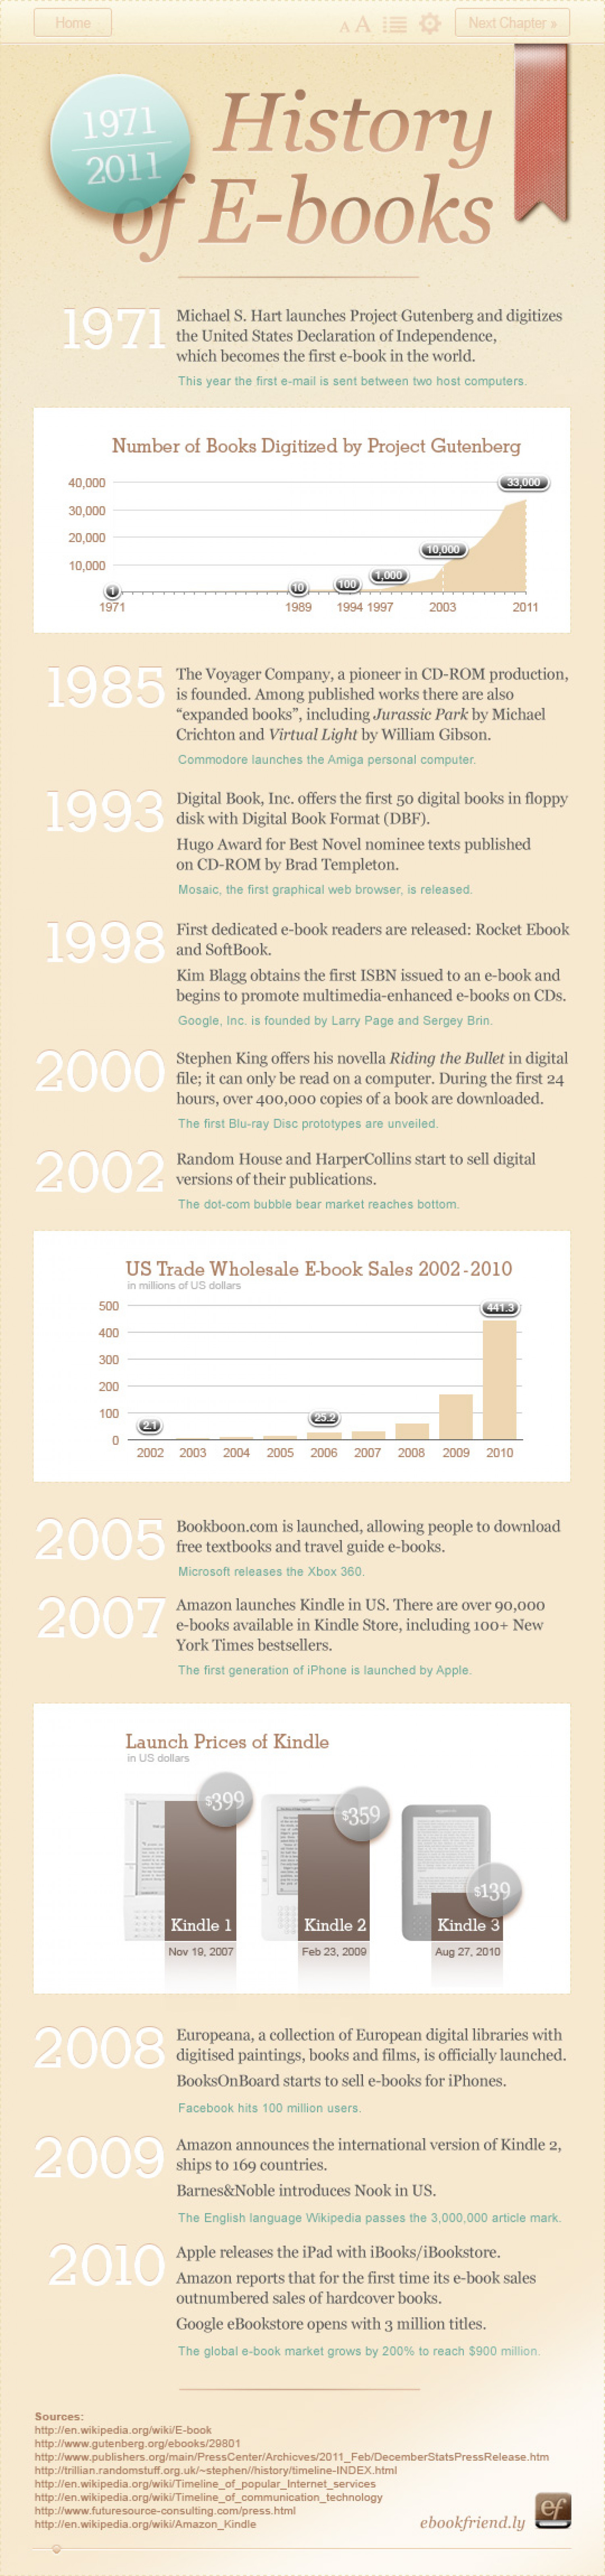 40 Years of E-books  Infographic